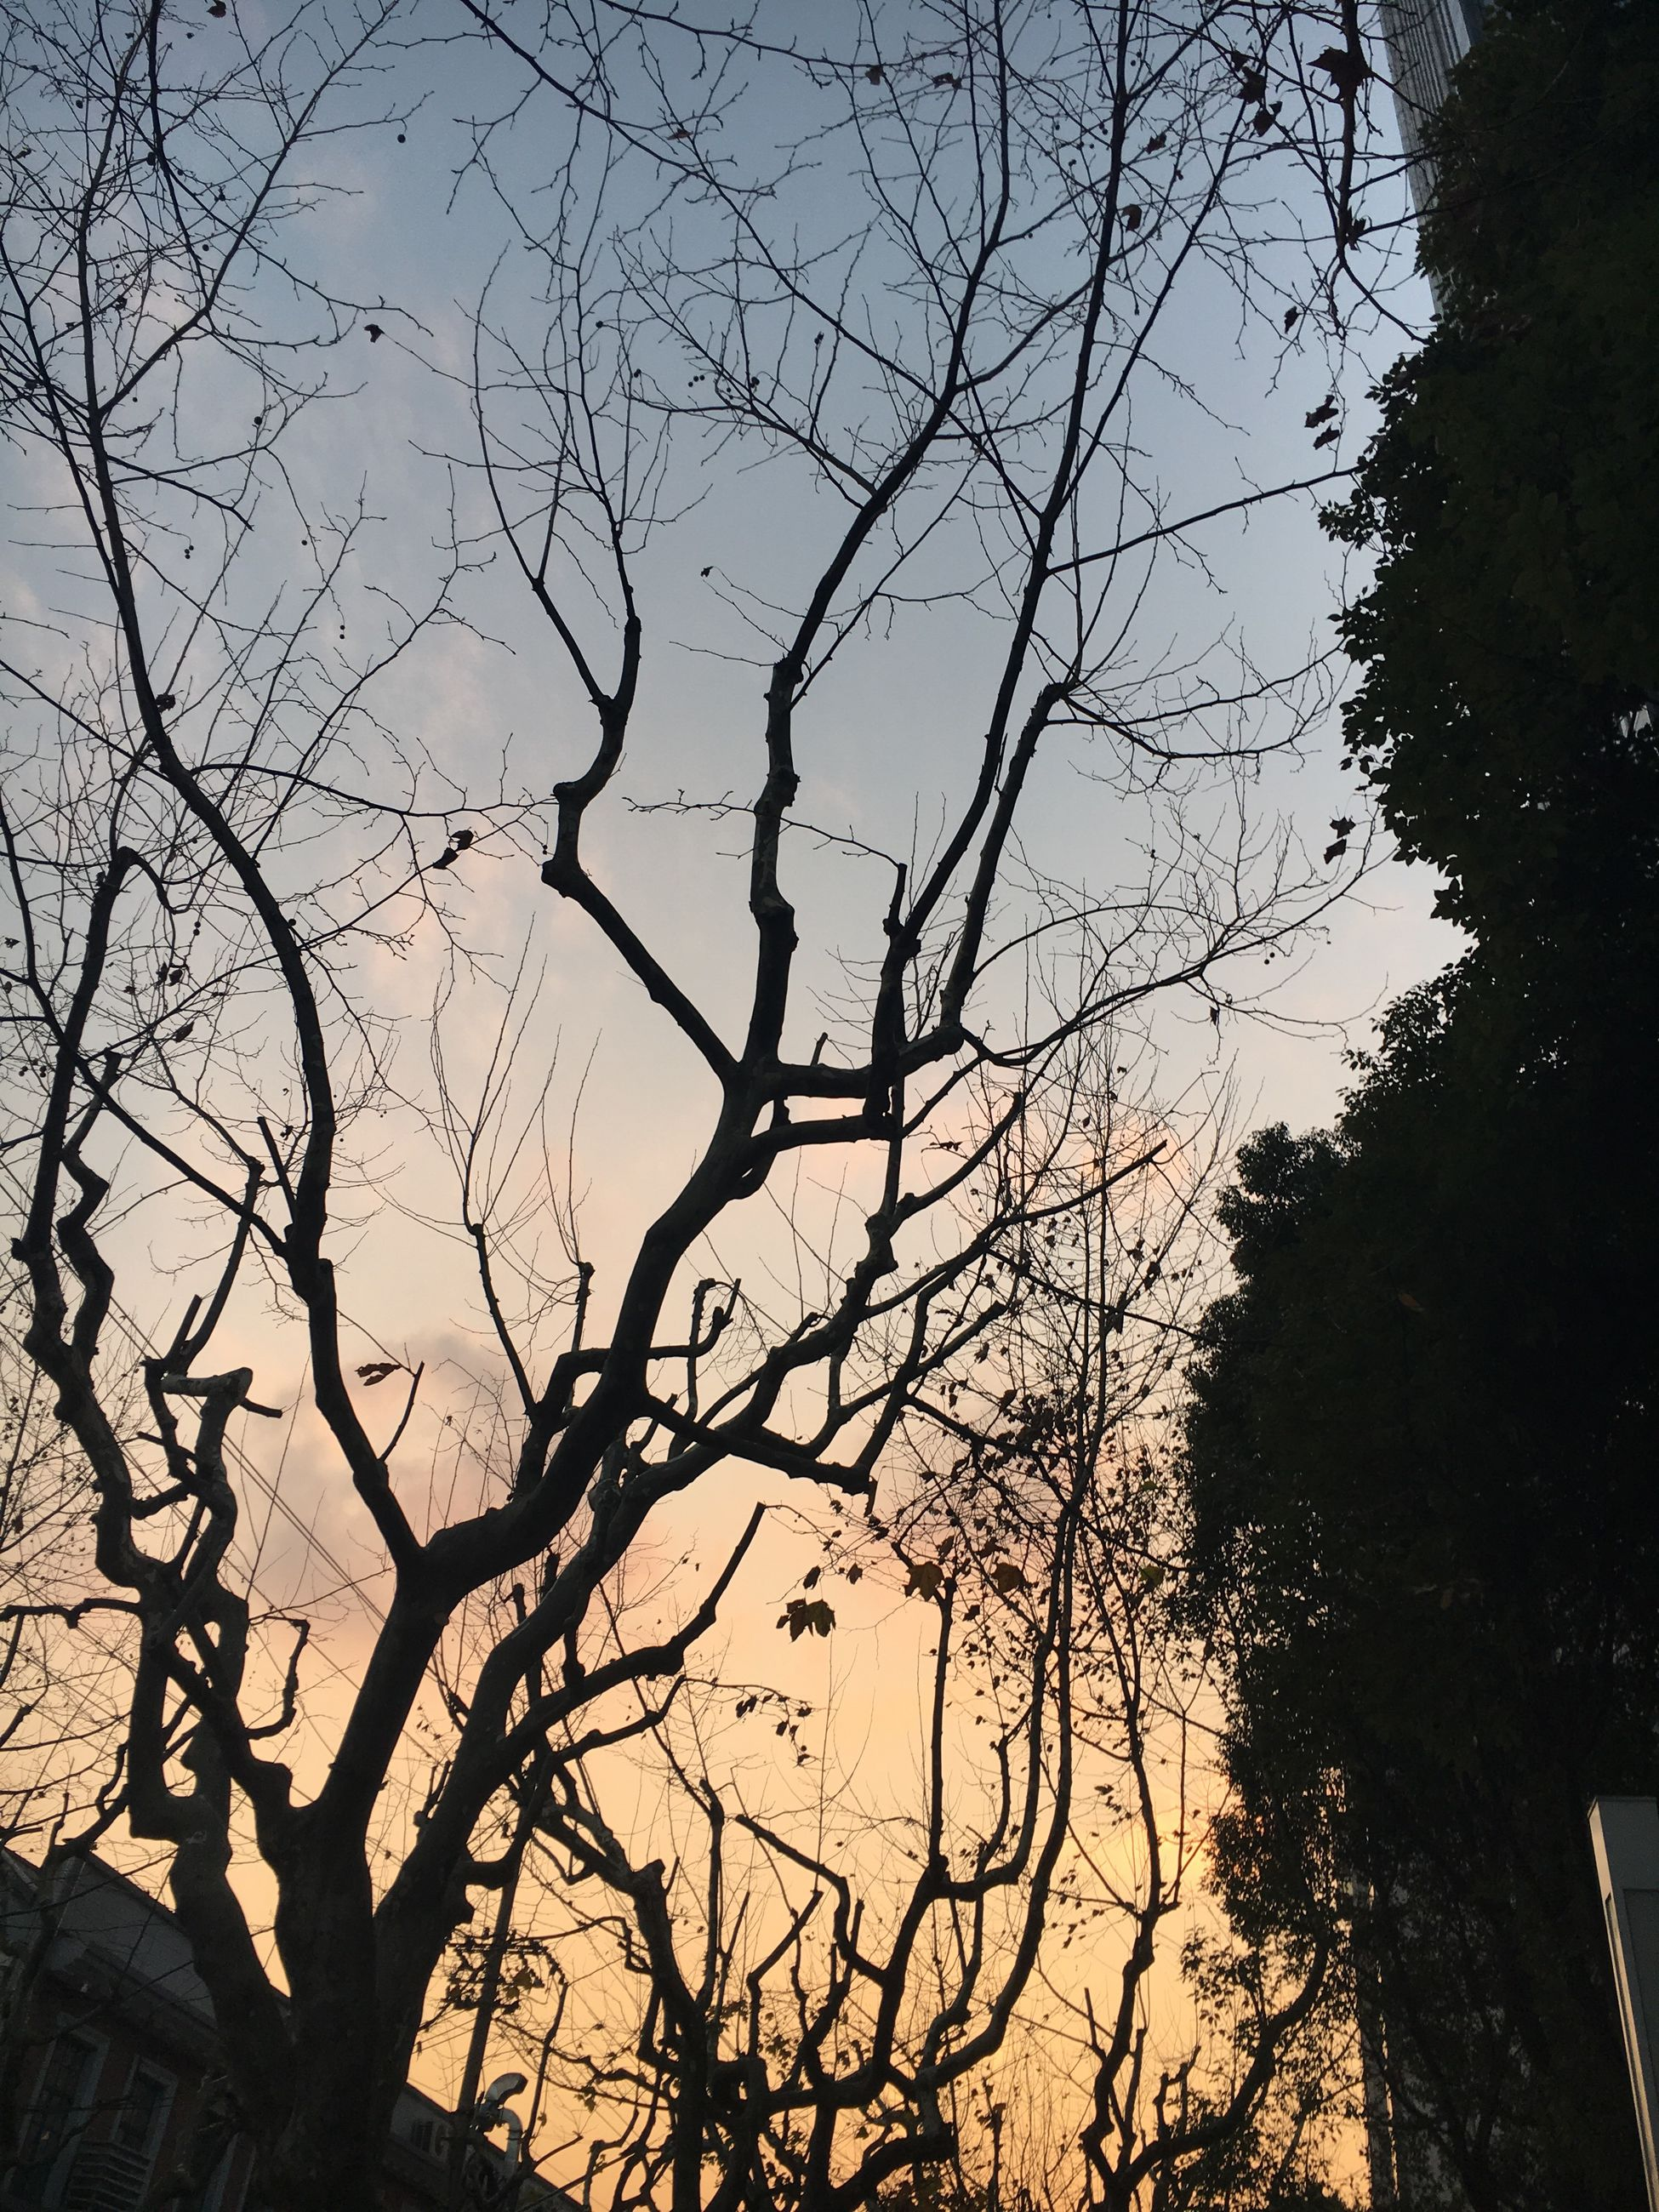 sunset, nature, silhouette, sky, beauty in nature, tree, sunlight, tranquility, no people, low angle view, outdoors, scenics, growth, tranquil scene, day